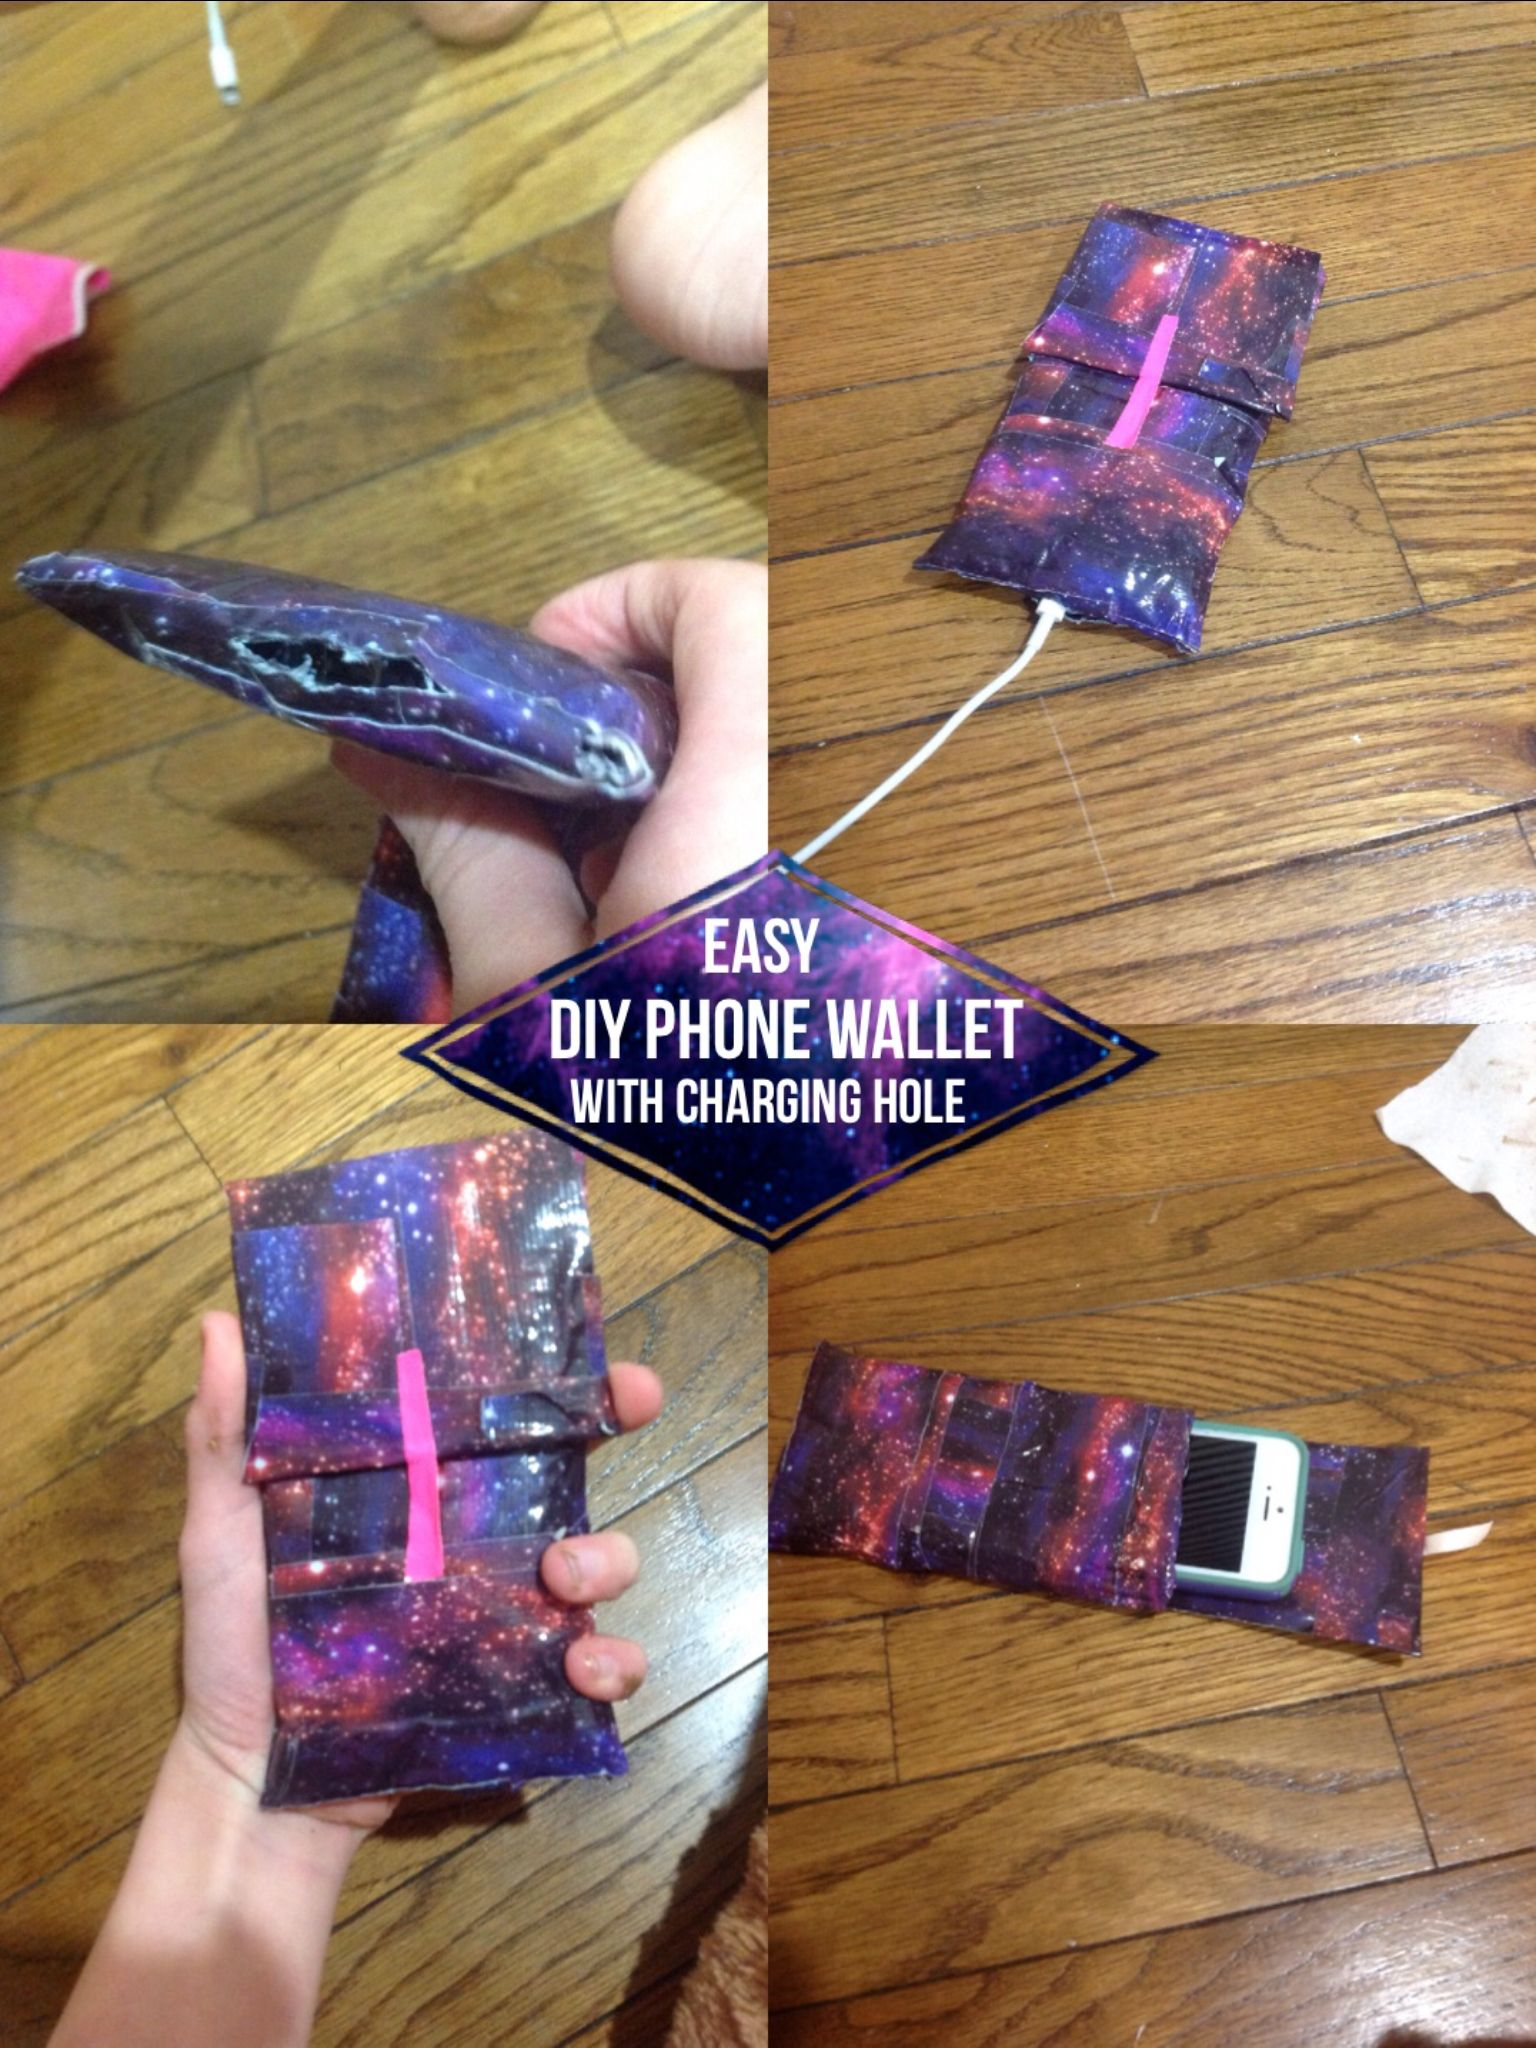 An easy diy yourself phone wallet! Made of duct tape